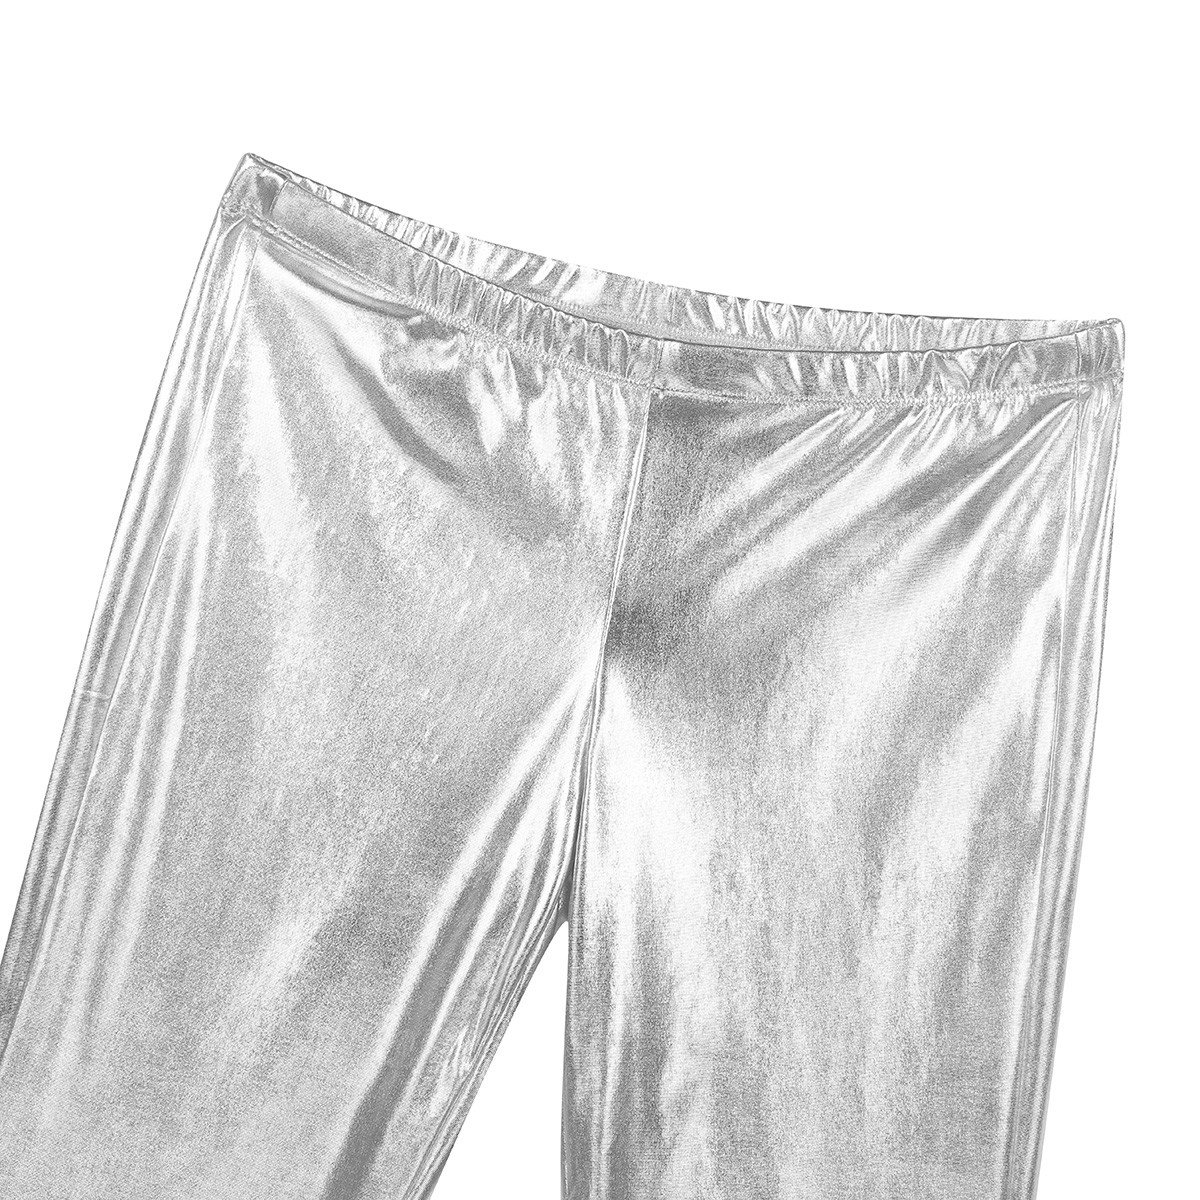 ChicTry Adults Mens Shiny Metallic Disco Pants with Bell Bottom Flared Long Pants Dude Costume Trousers for 70's Theme Parties 32